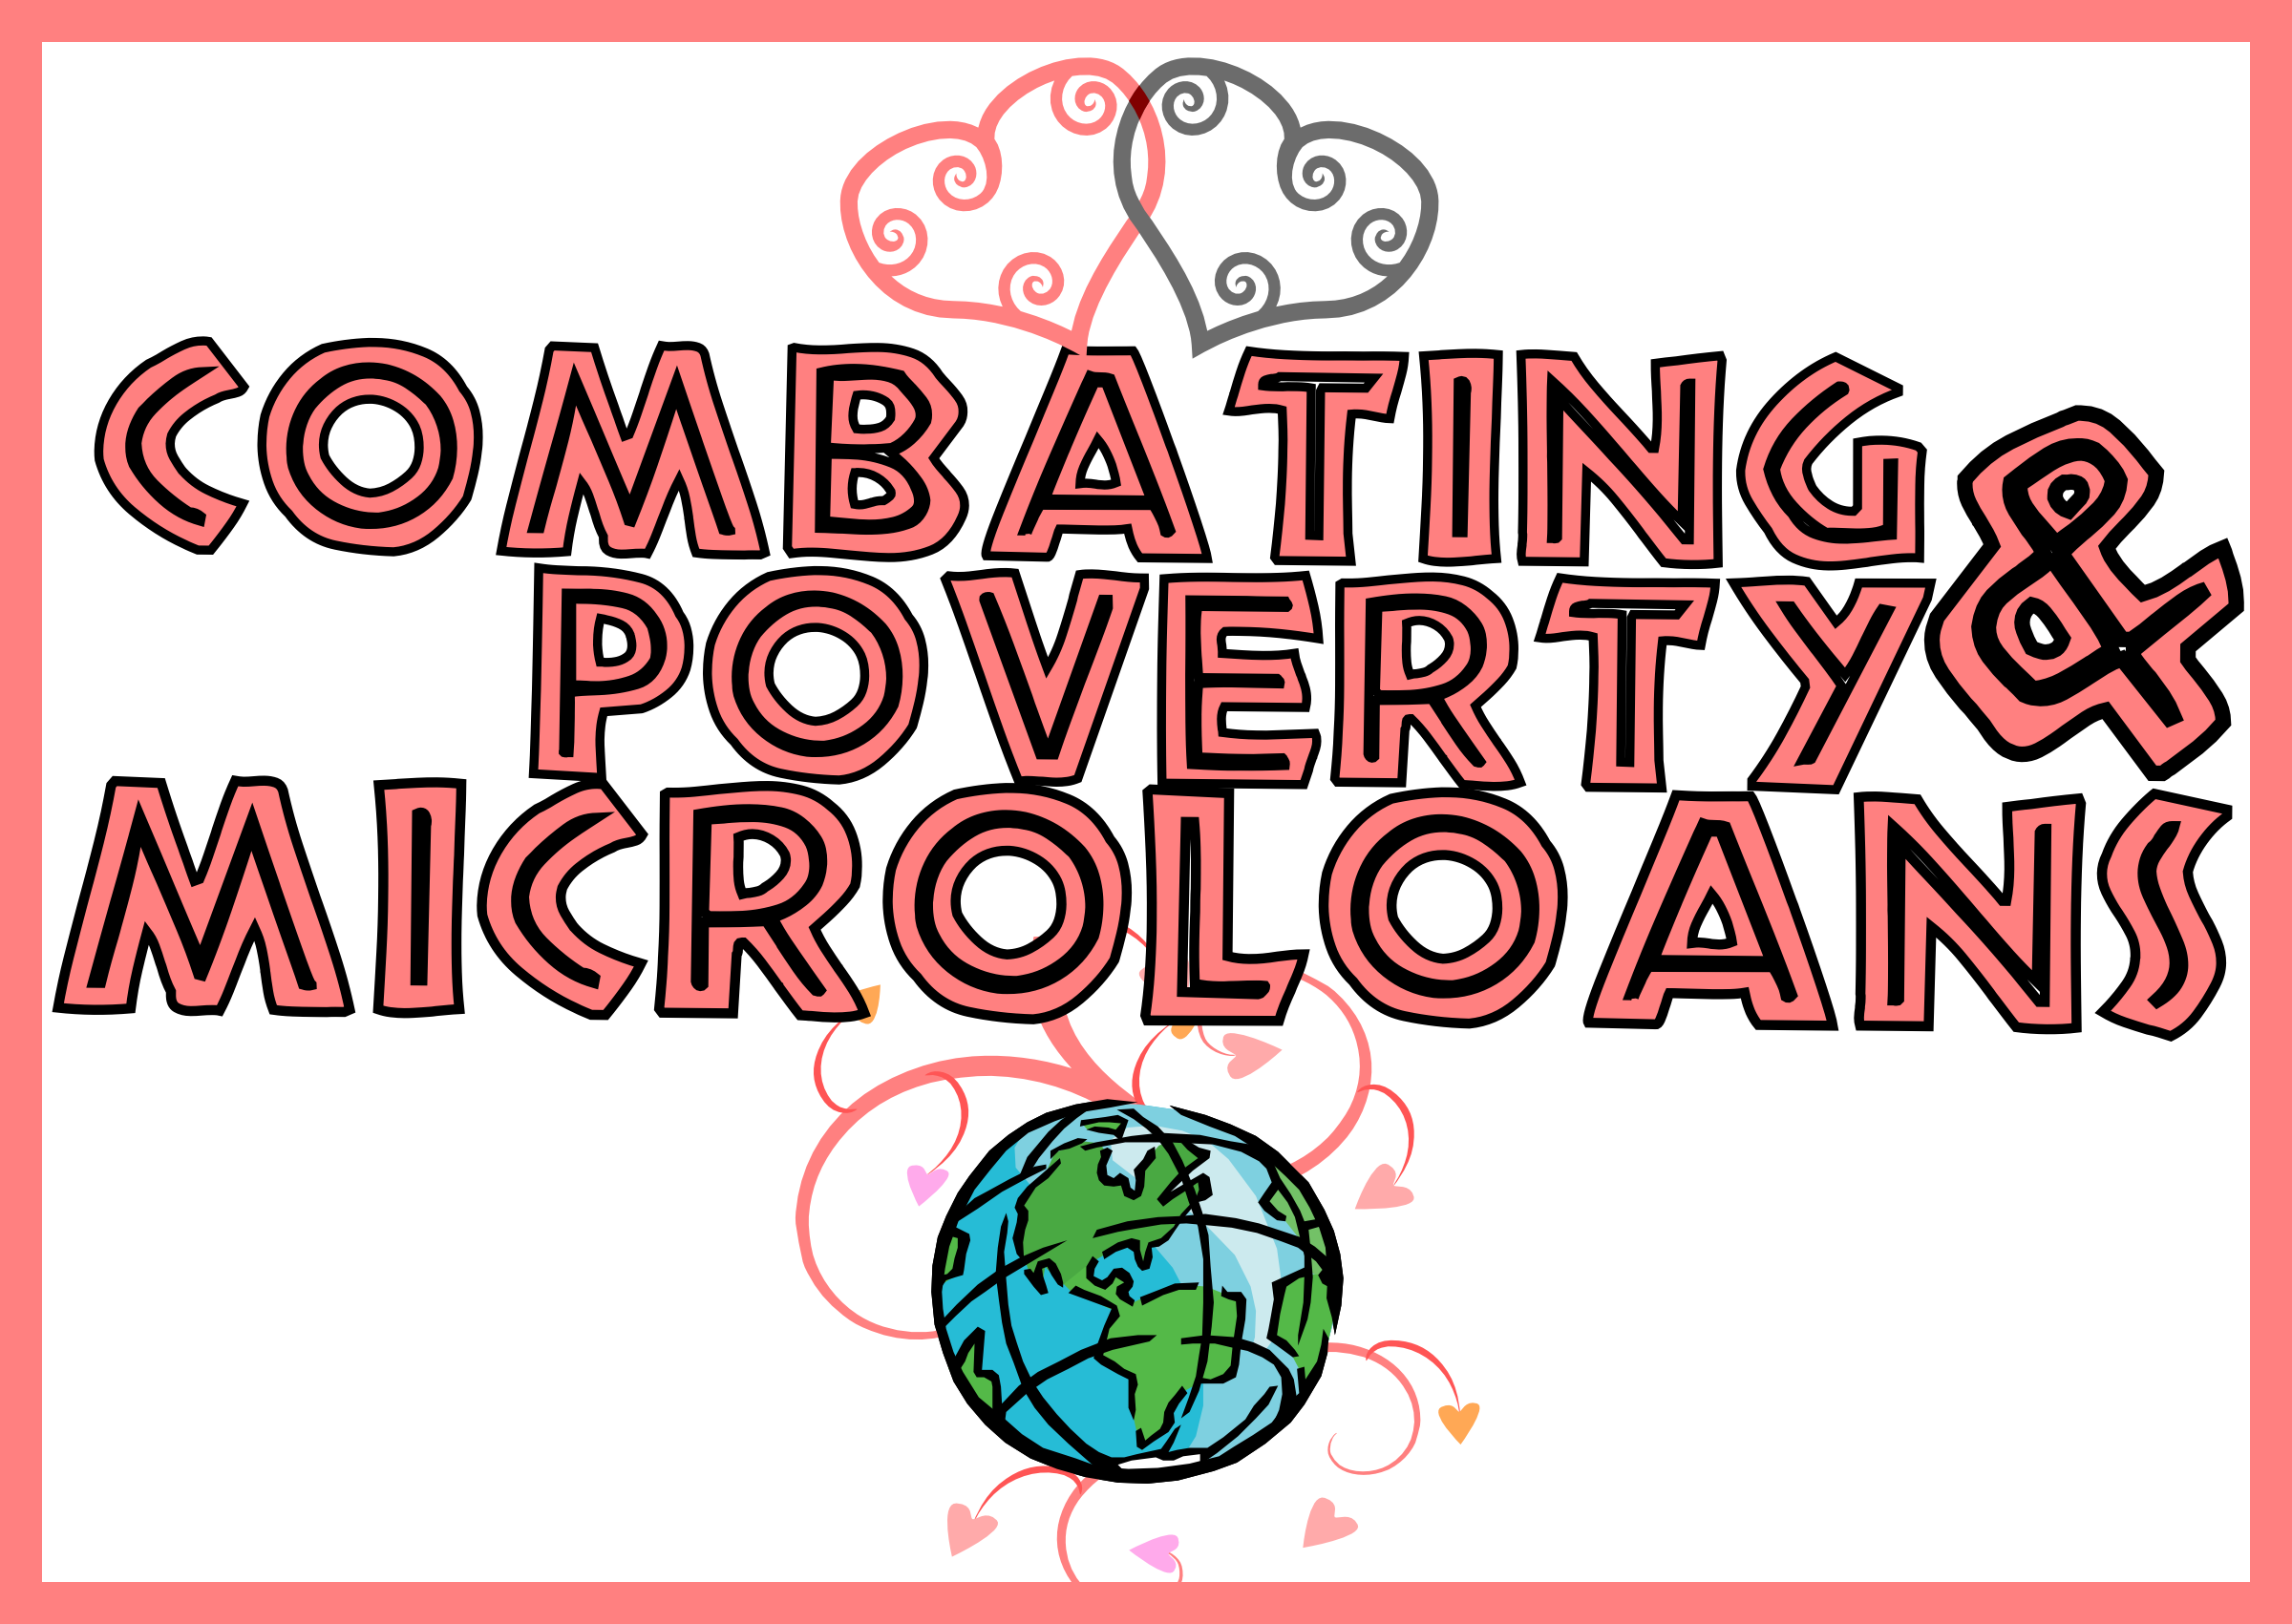 Combating Poverty & Microloans